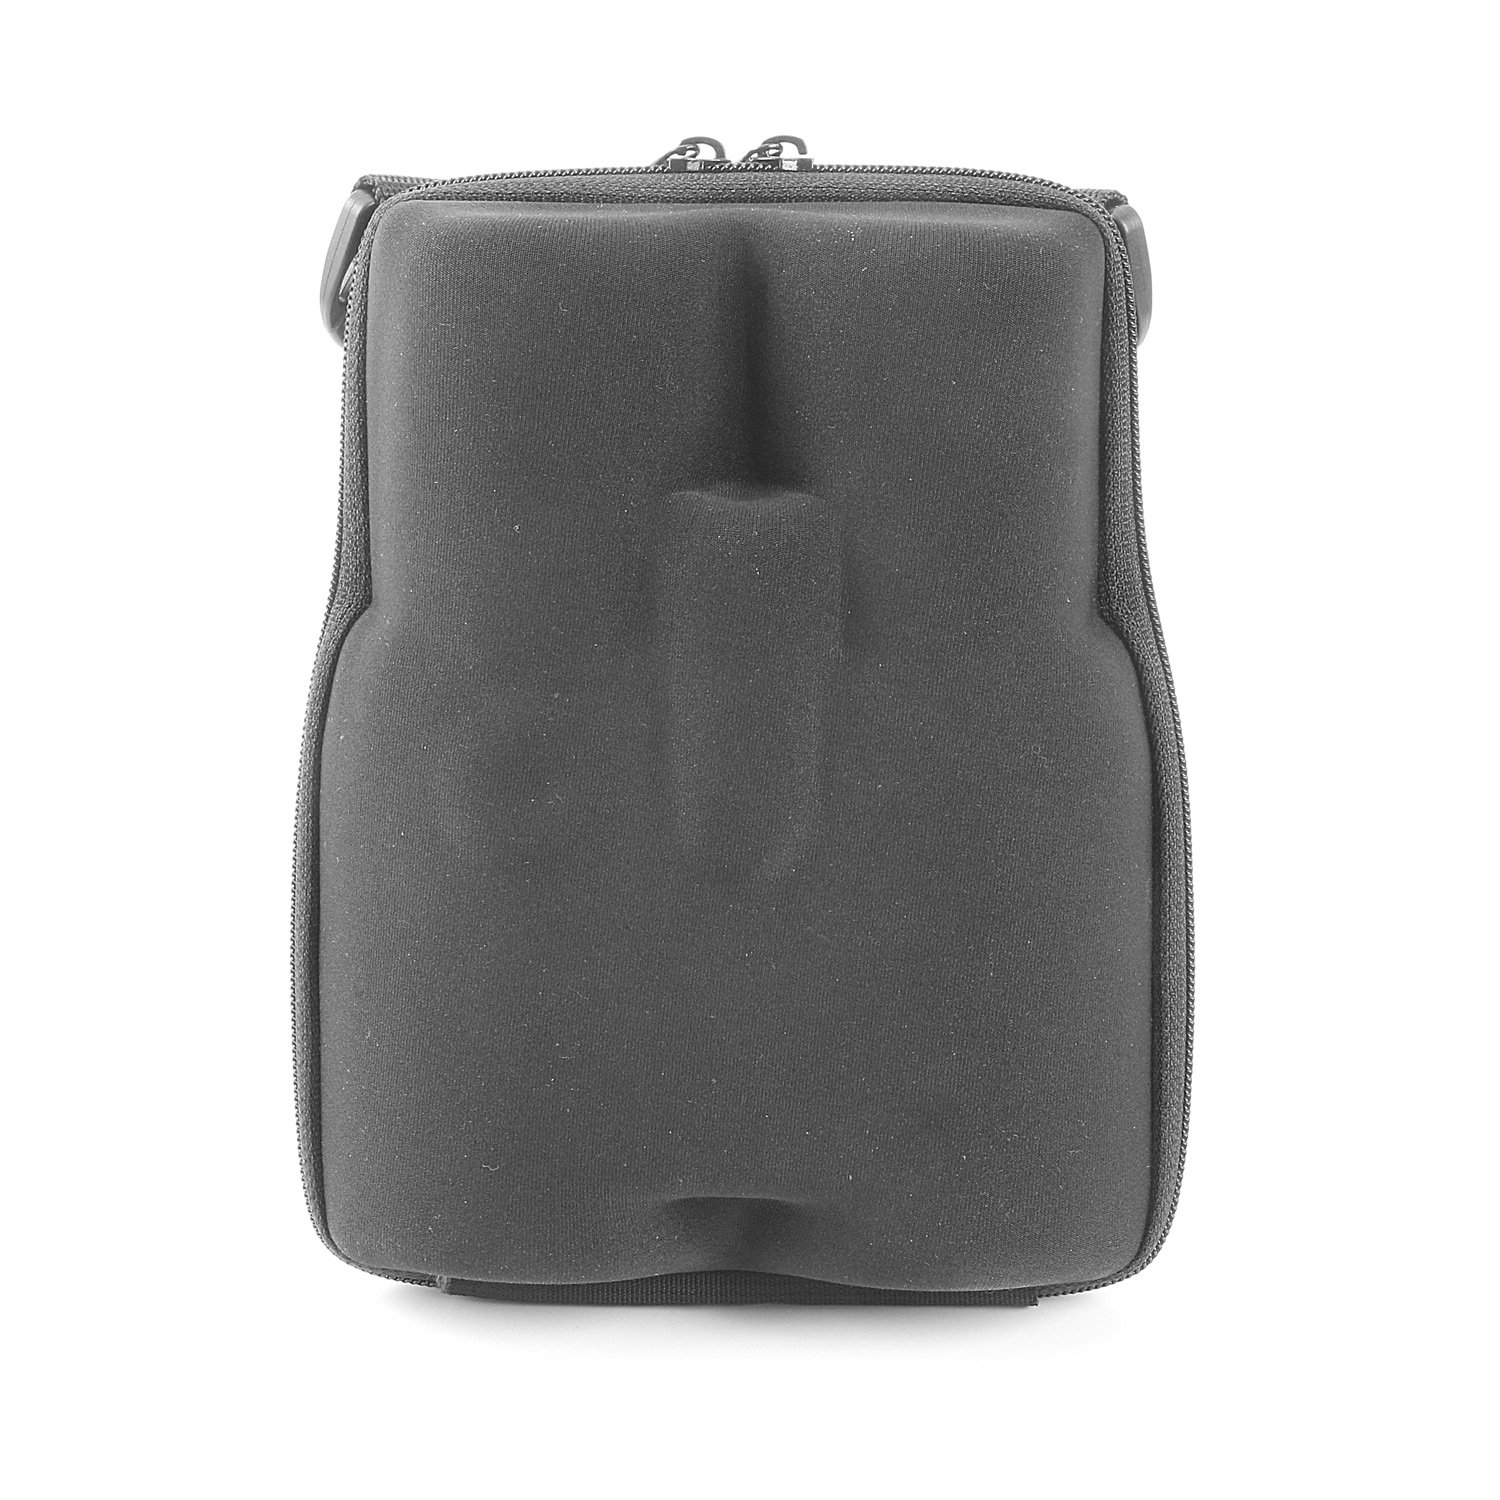 Molded Foam Case For Canon 18x50 IS Binoculars Case For Canon Binoculars Portable Sleeve Box Bag Travel Case Canon Traveling Surf To Summit